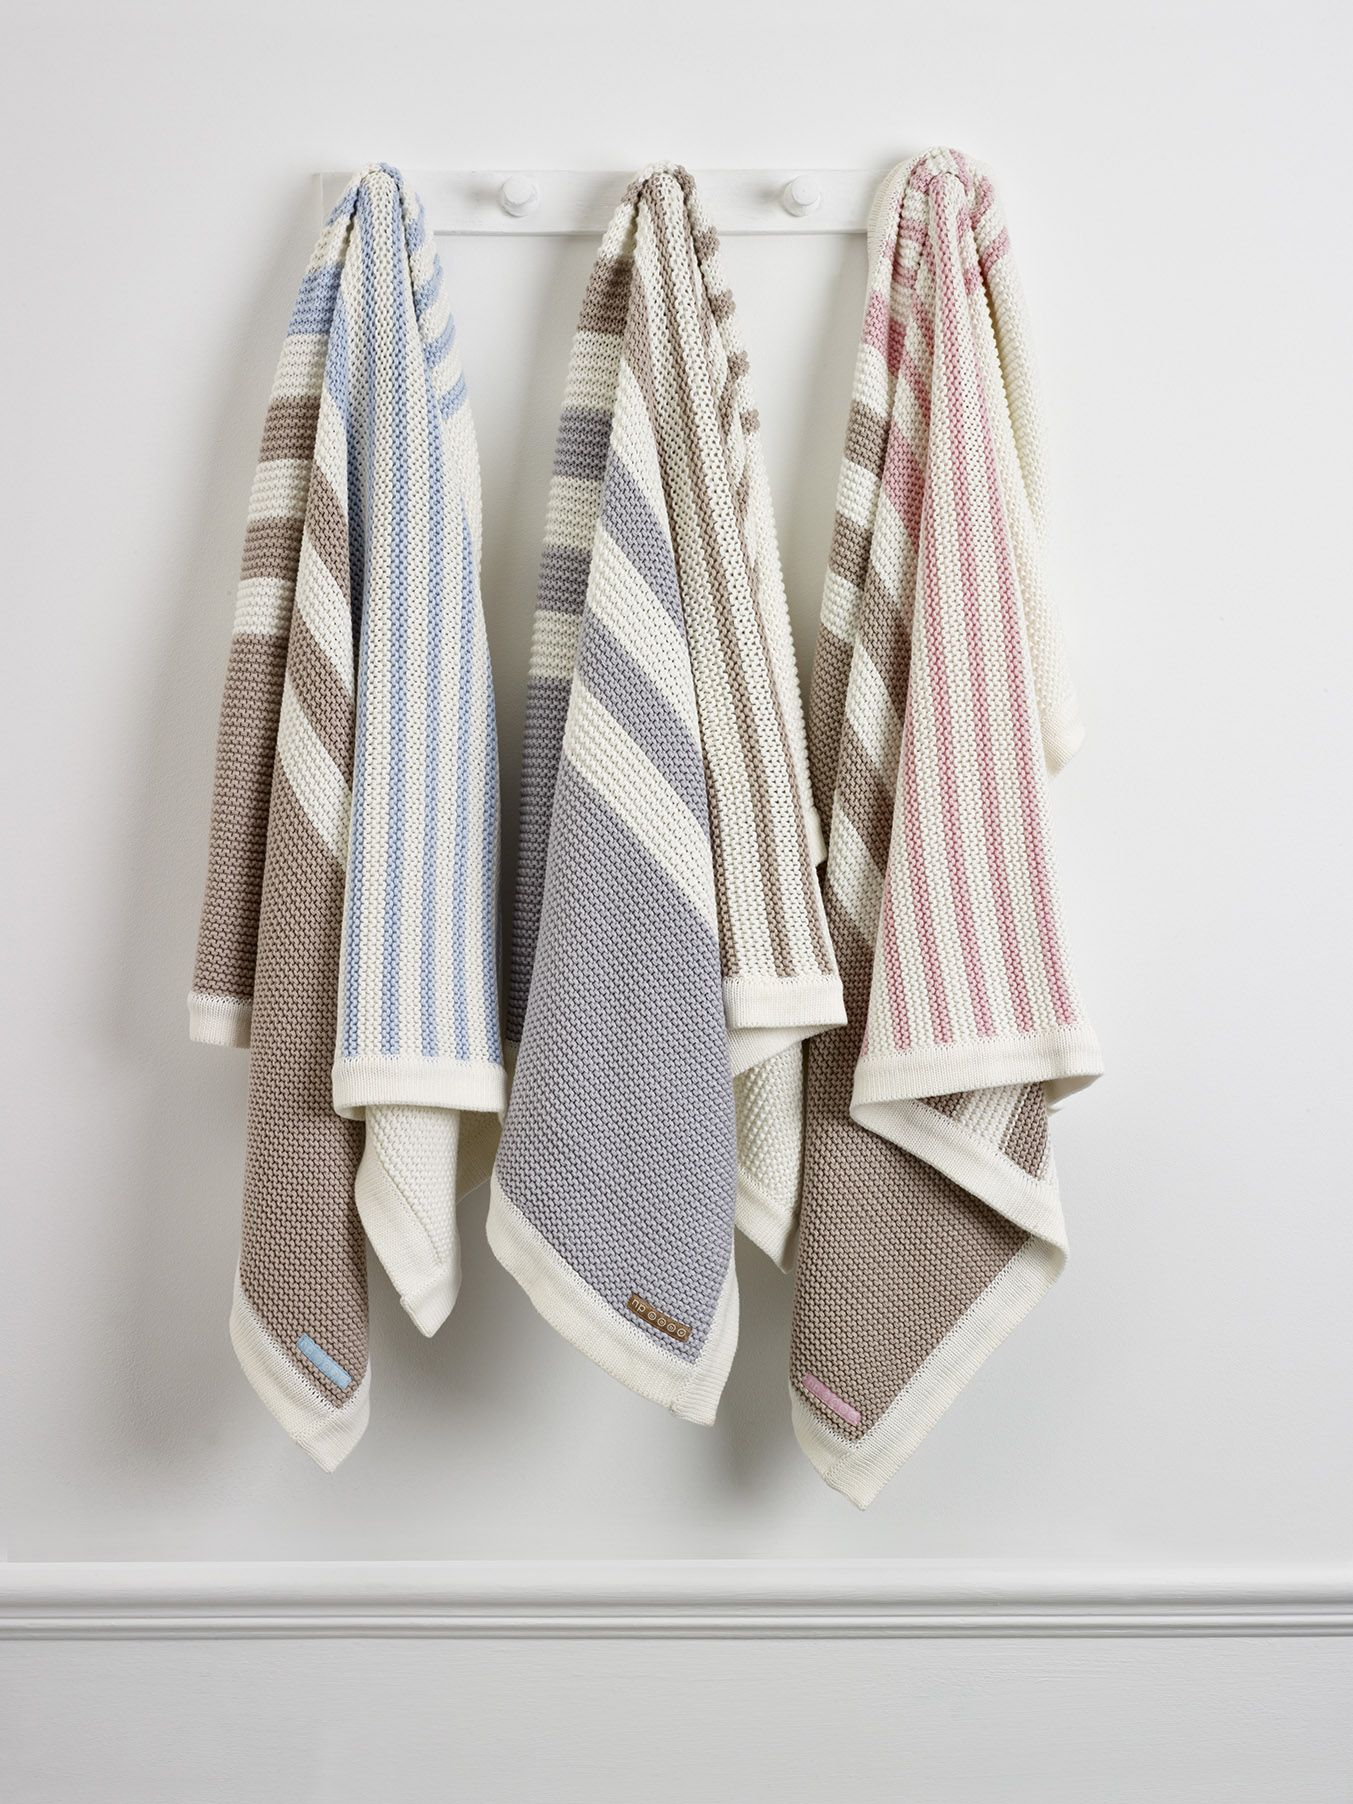 Natures Knits Striped #Blanket made from 100% Organically Grown, Naturally  Coloured #Cotton.